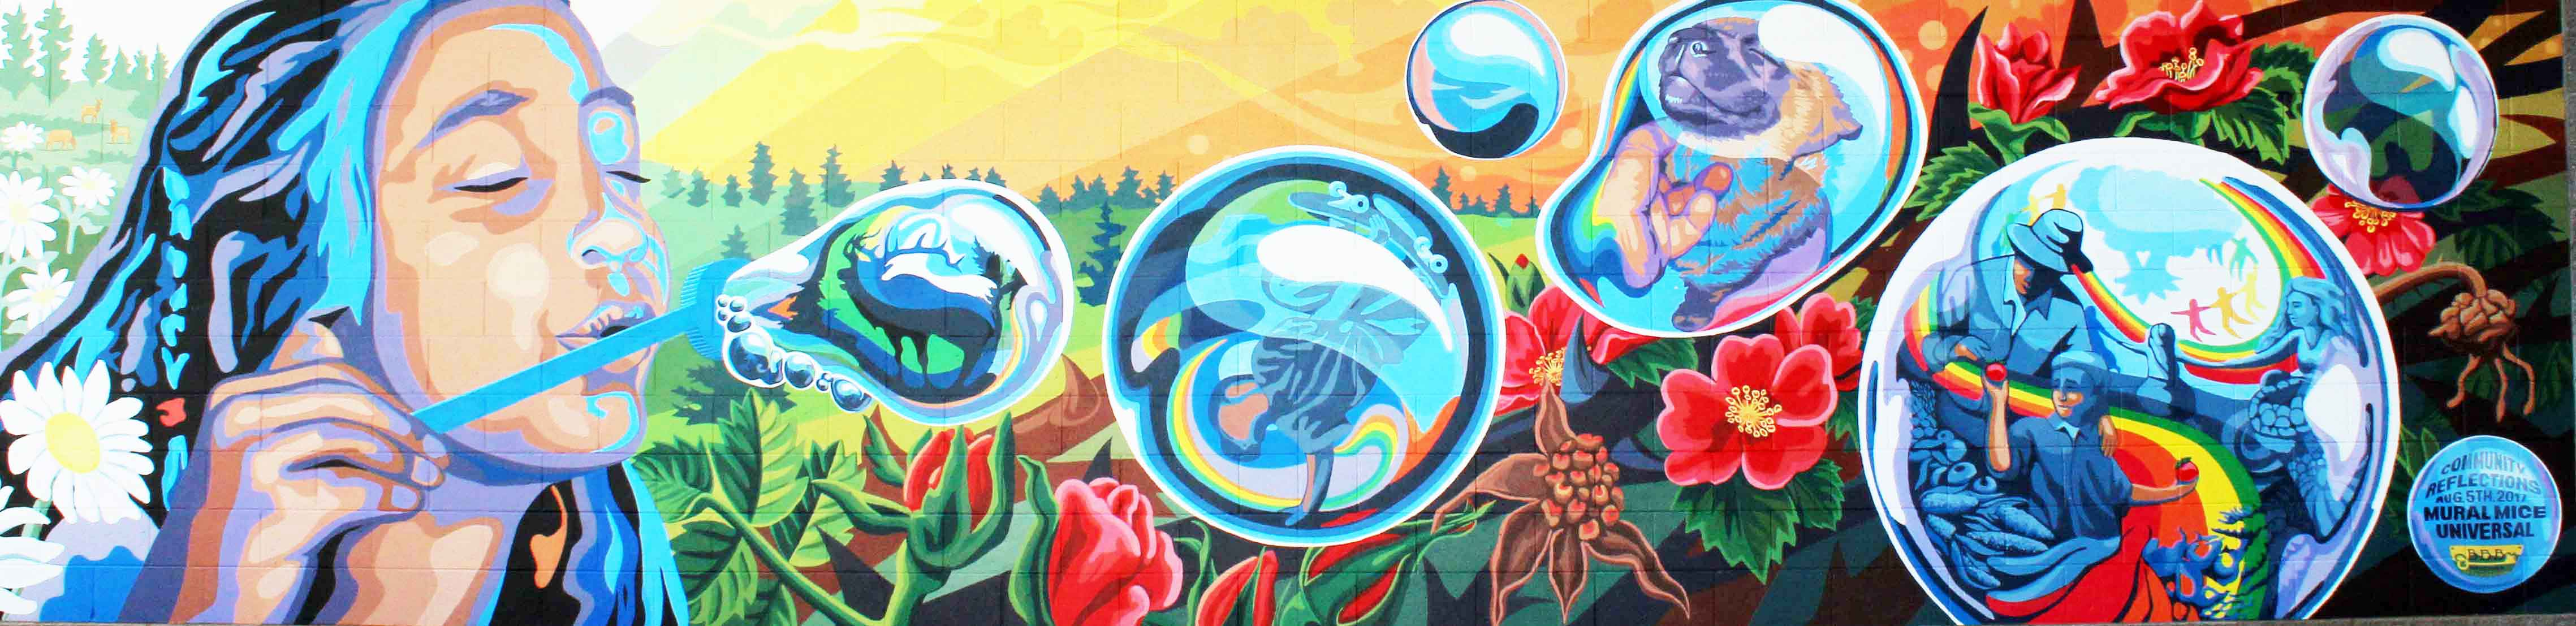 Community Reflections Mural